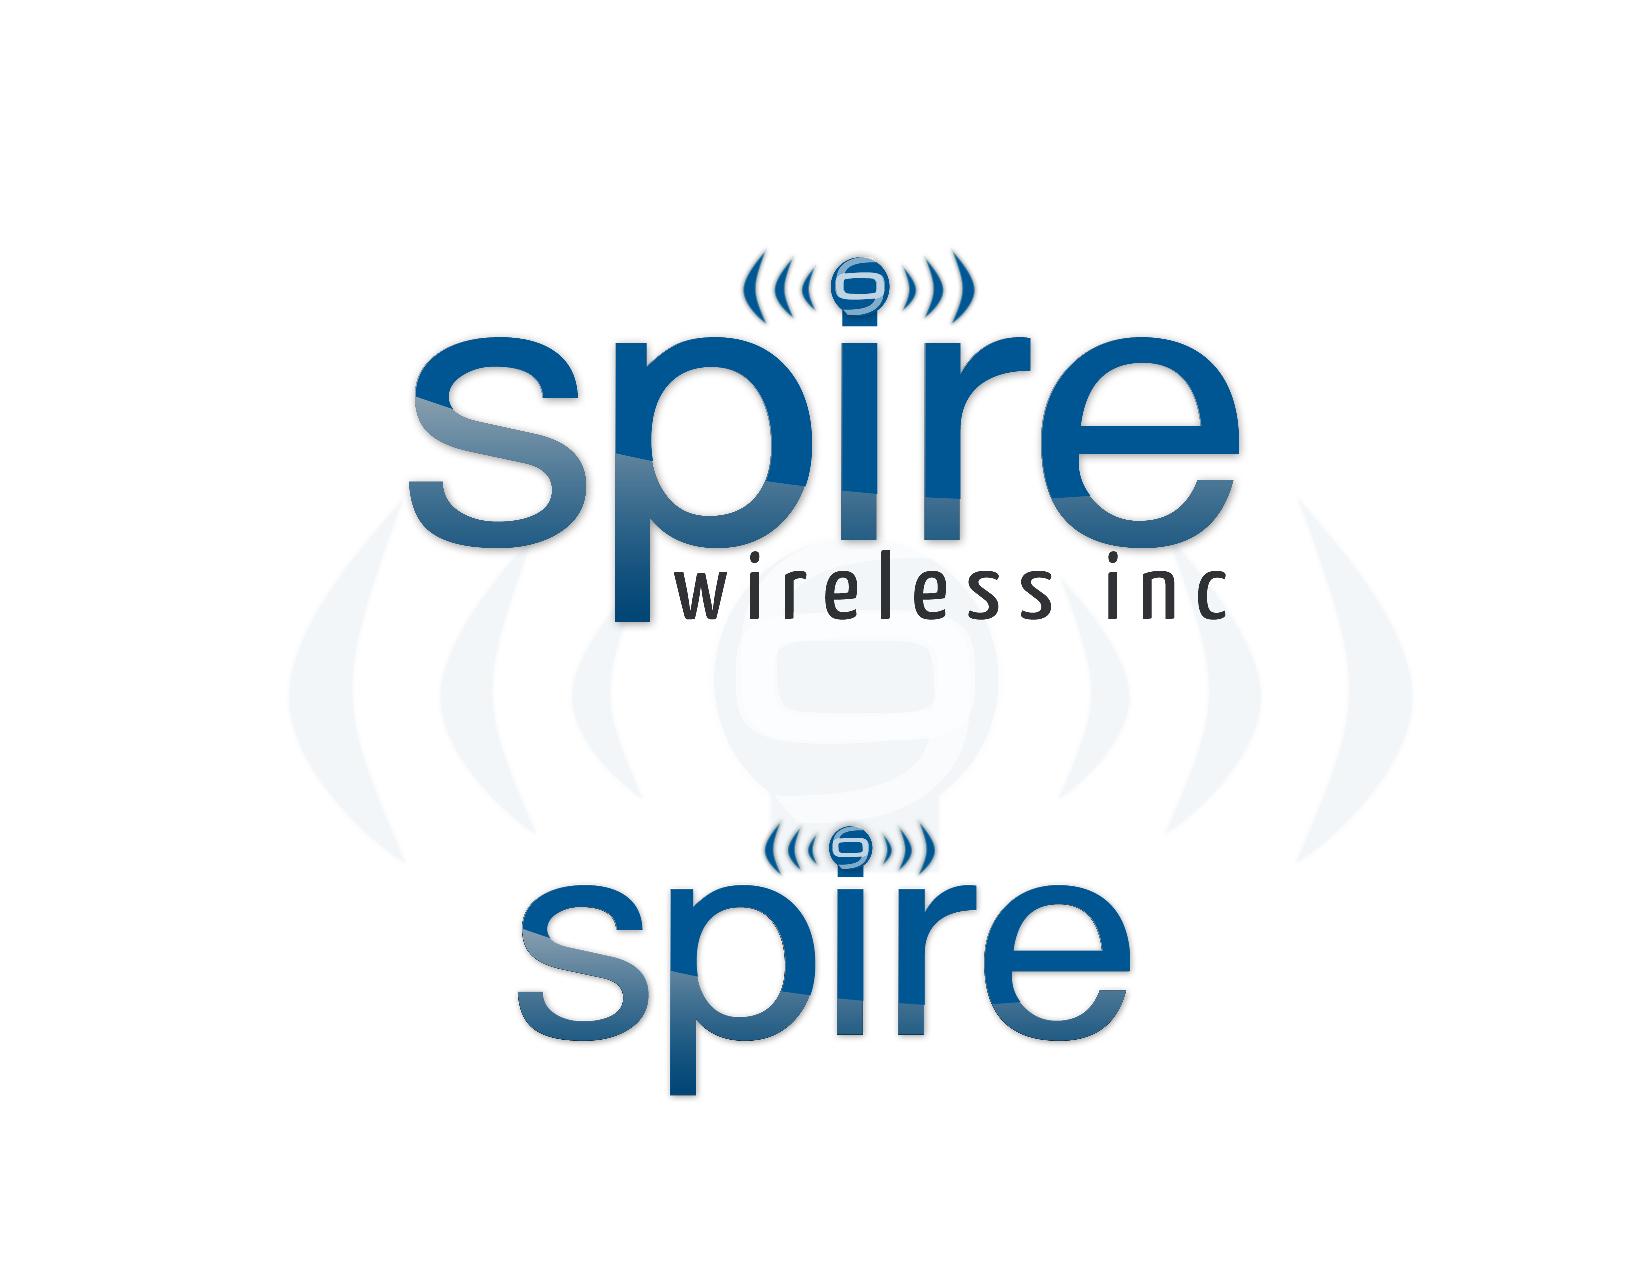 Logo Design by Charles Timothy - Entry No. 128 in the Logo Design Contest Logo Design for Spire Wireless Inc.